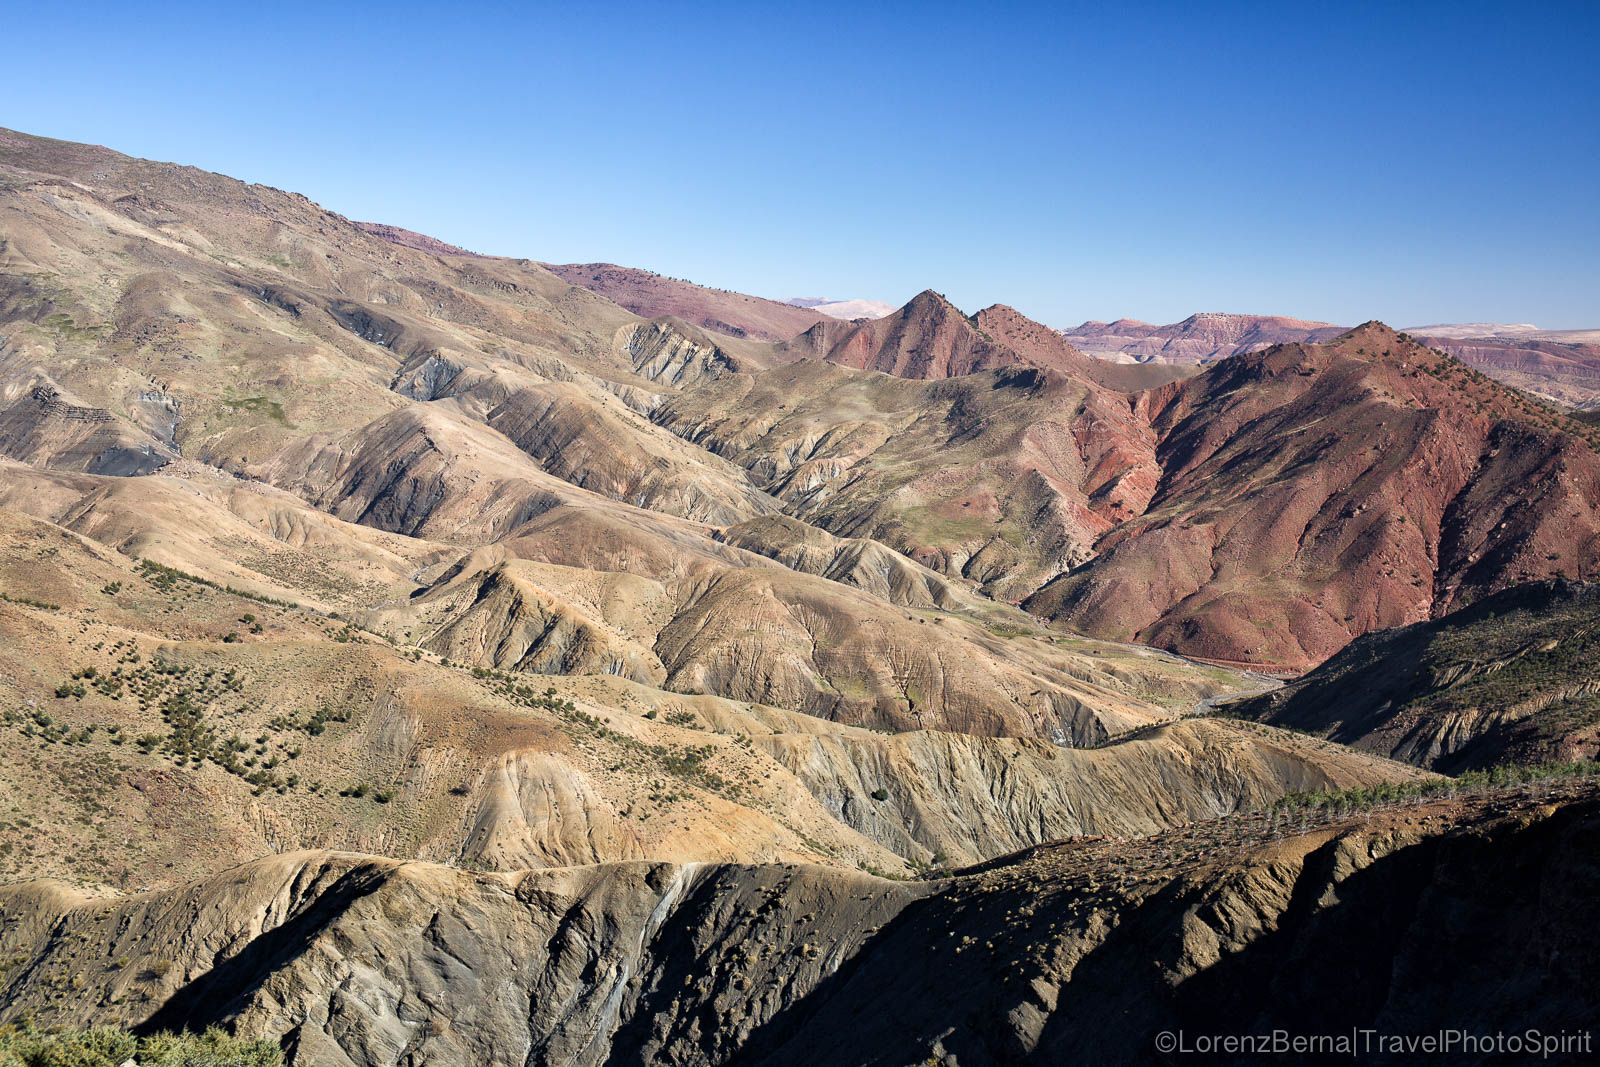 The High Atlas mountain range of Morocco.